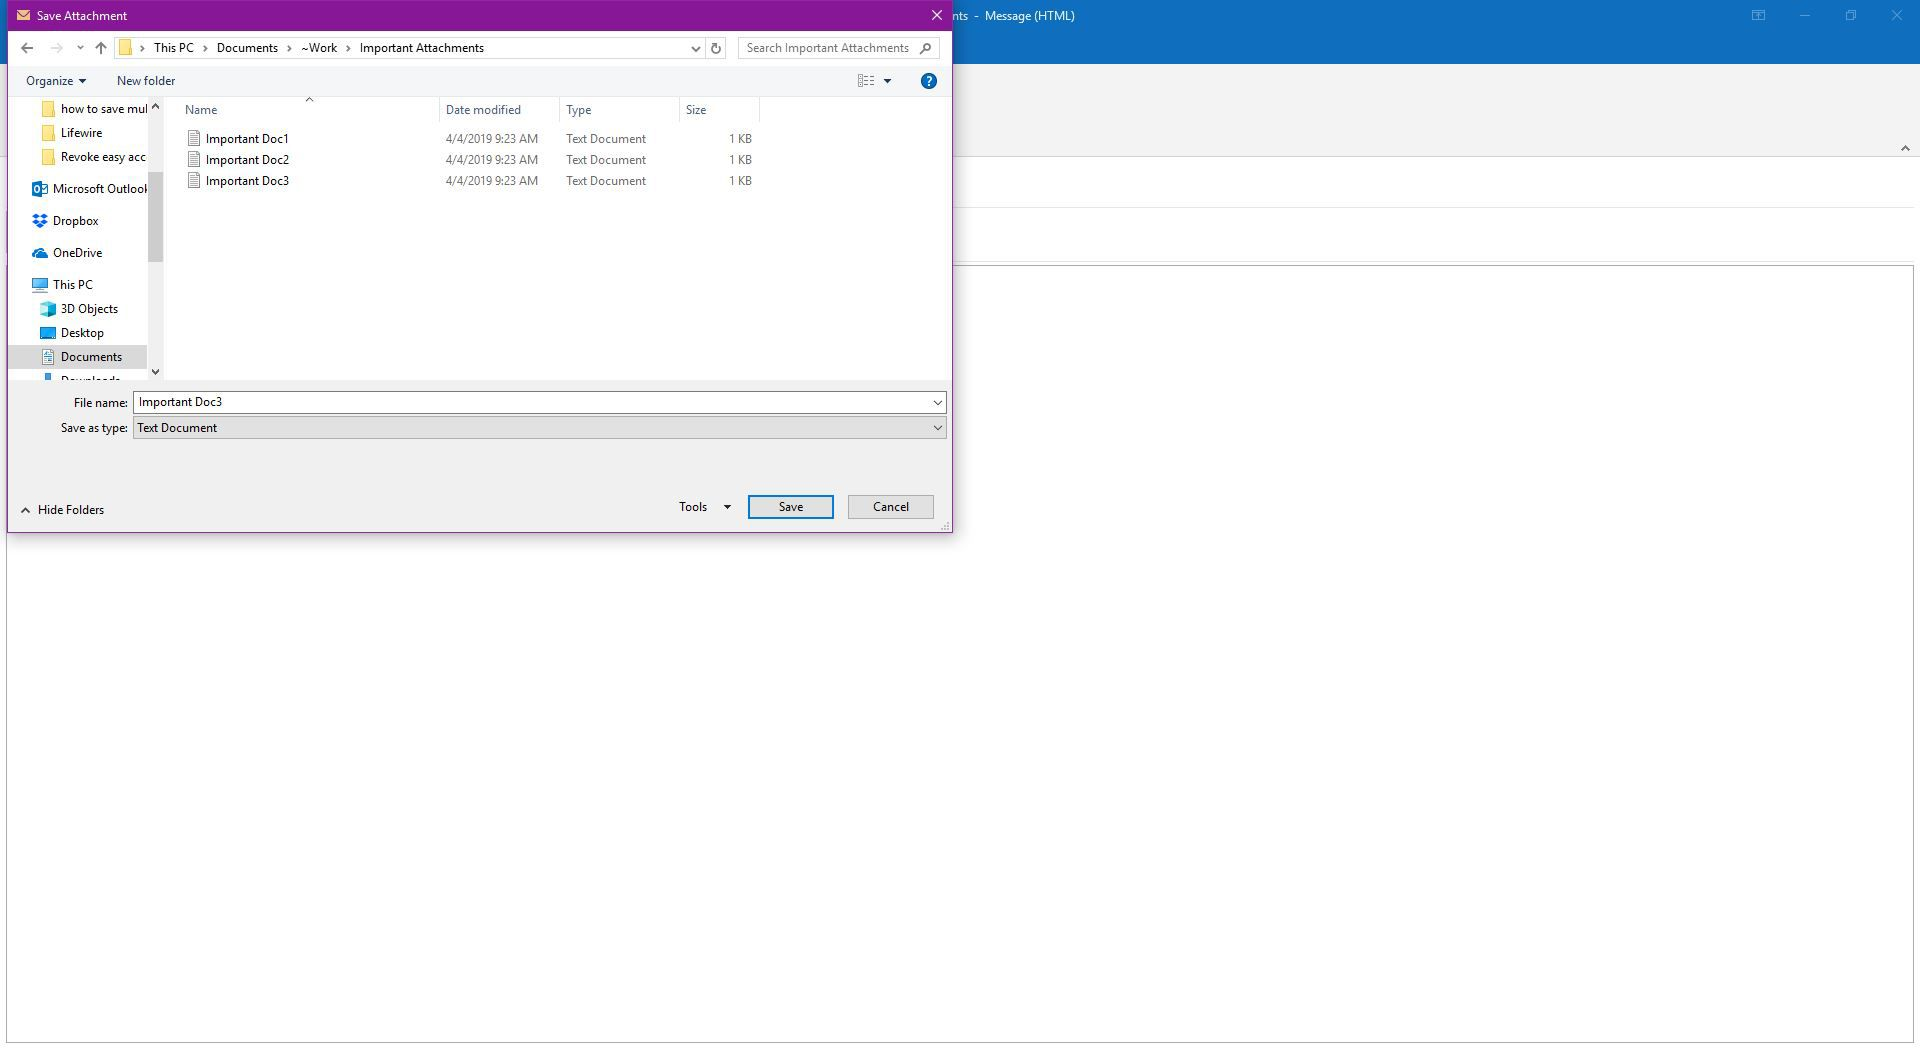 How to Save Multiple Attachments at Once With Outlook